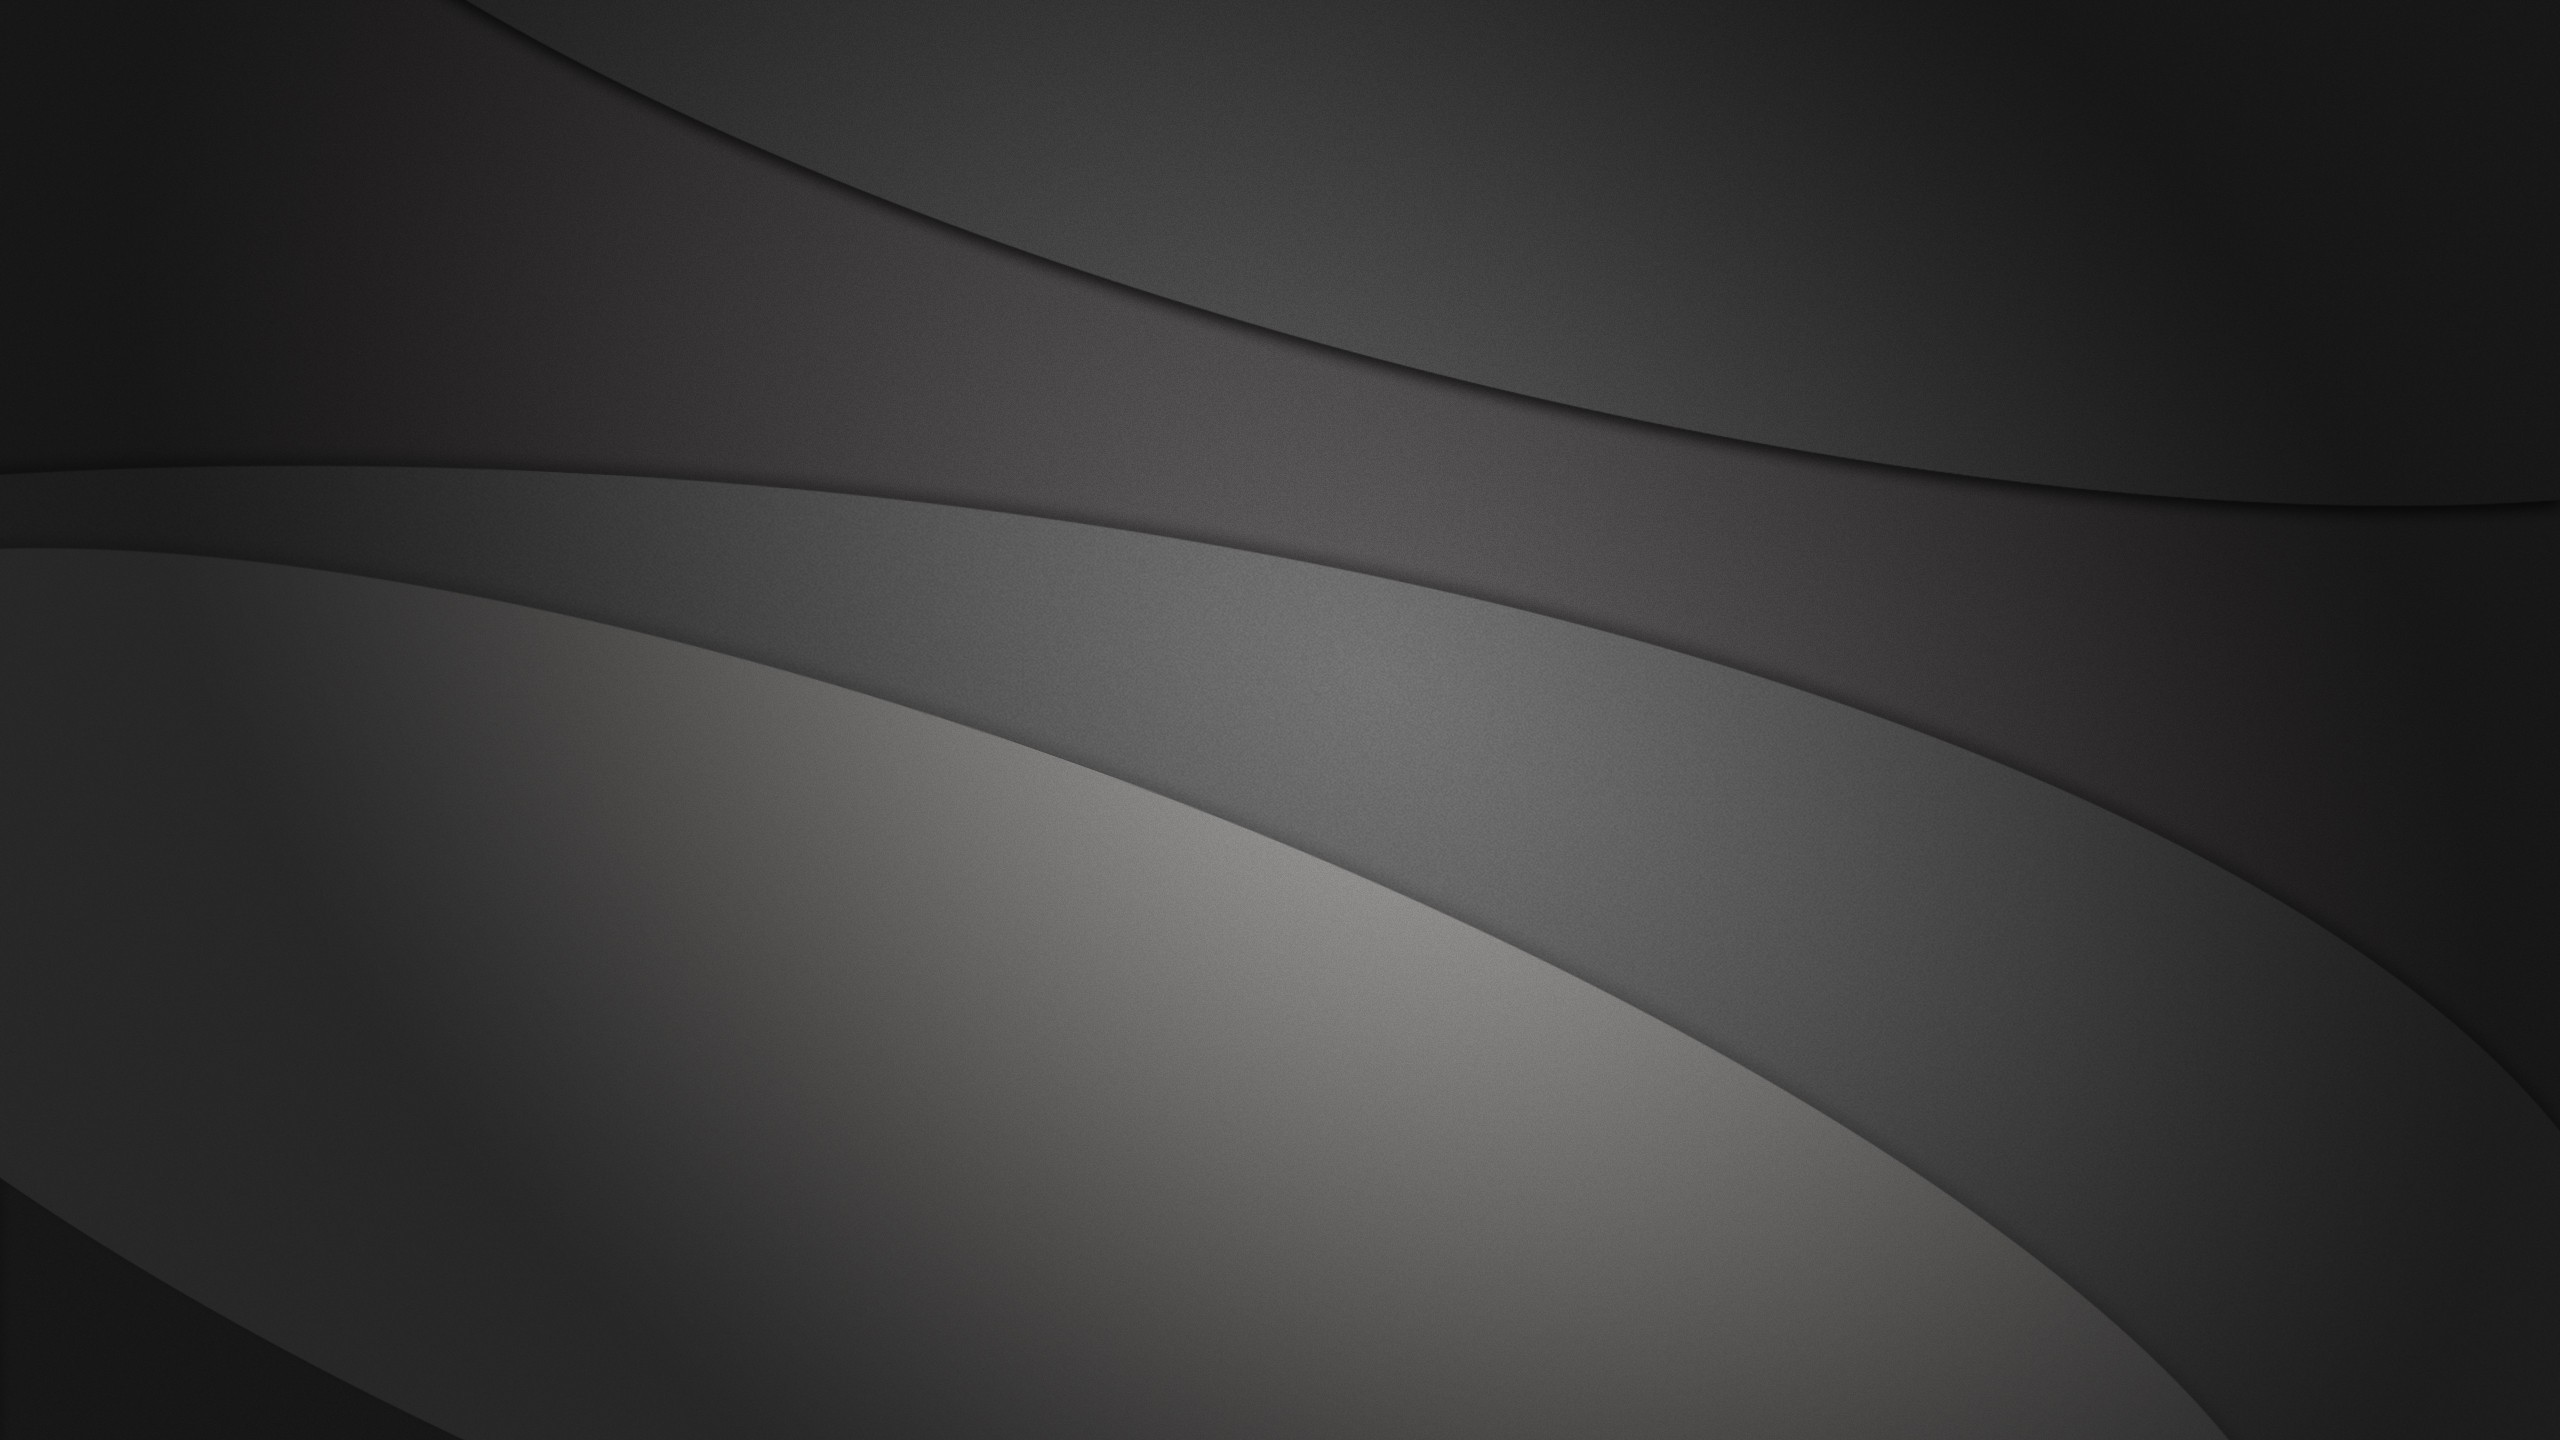 Download grey wallpaper 19180 2560x1440 px high resolution for Black and grey wallpaper designs